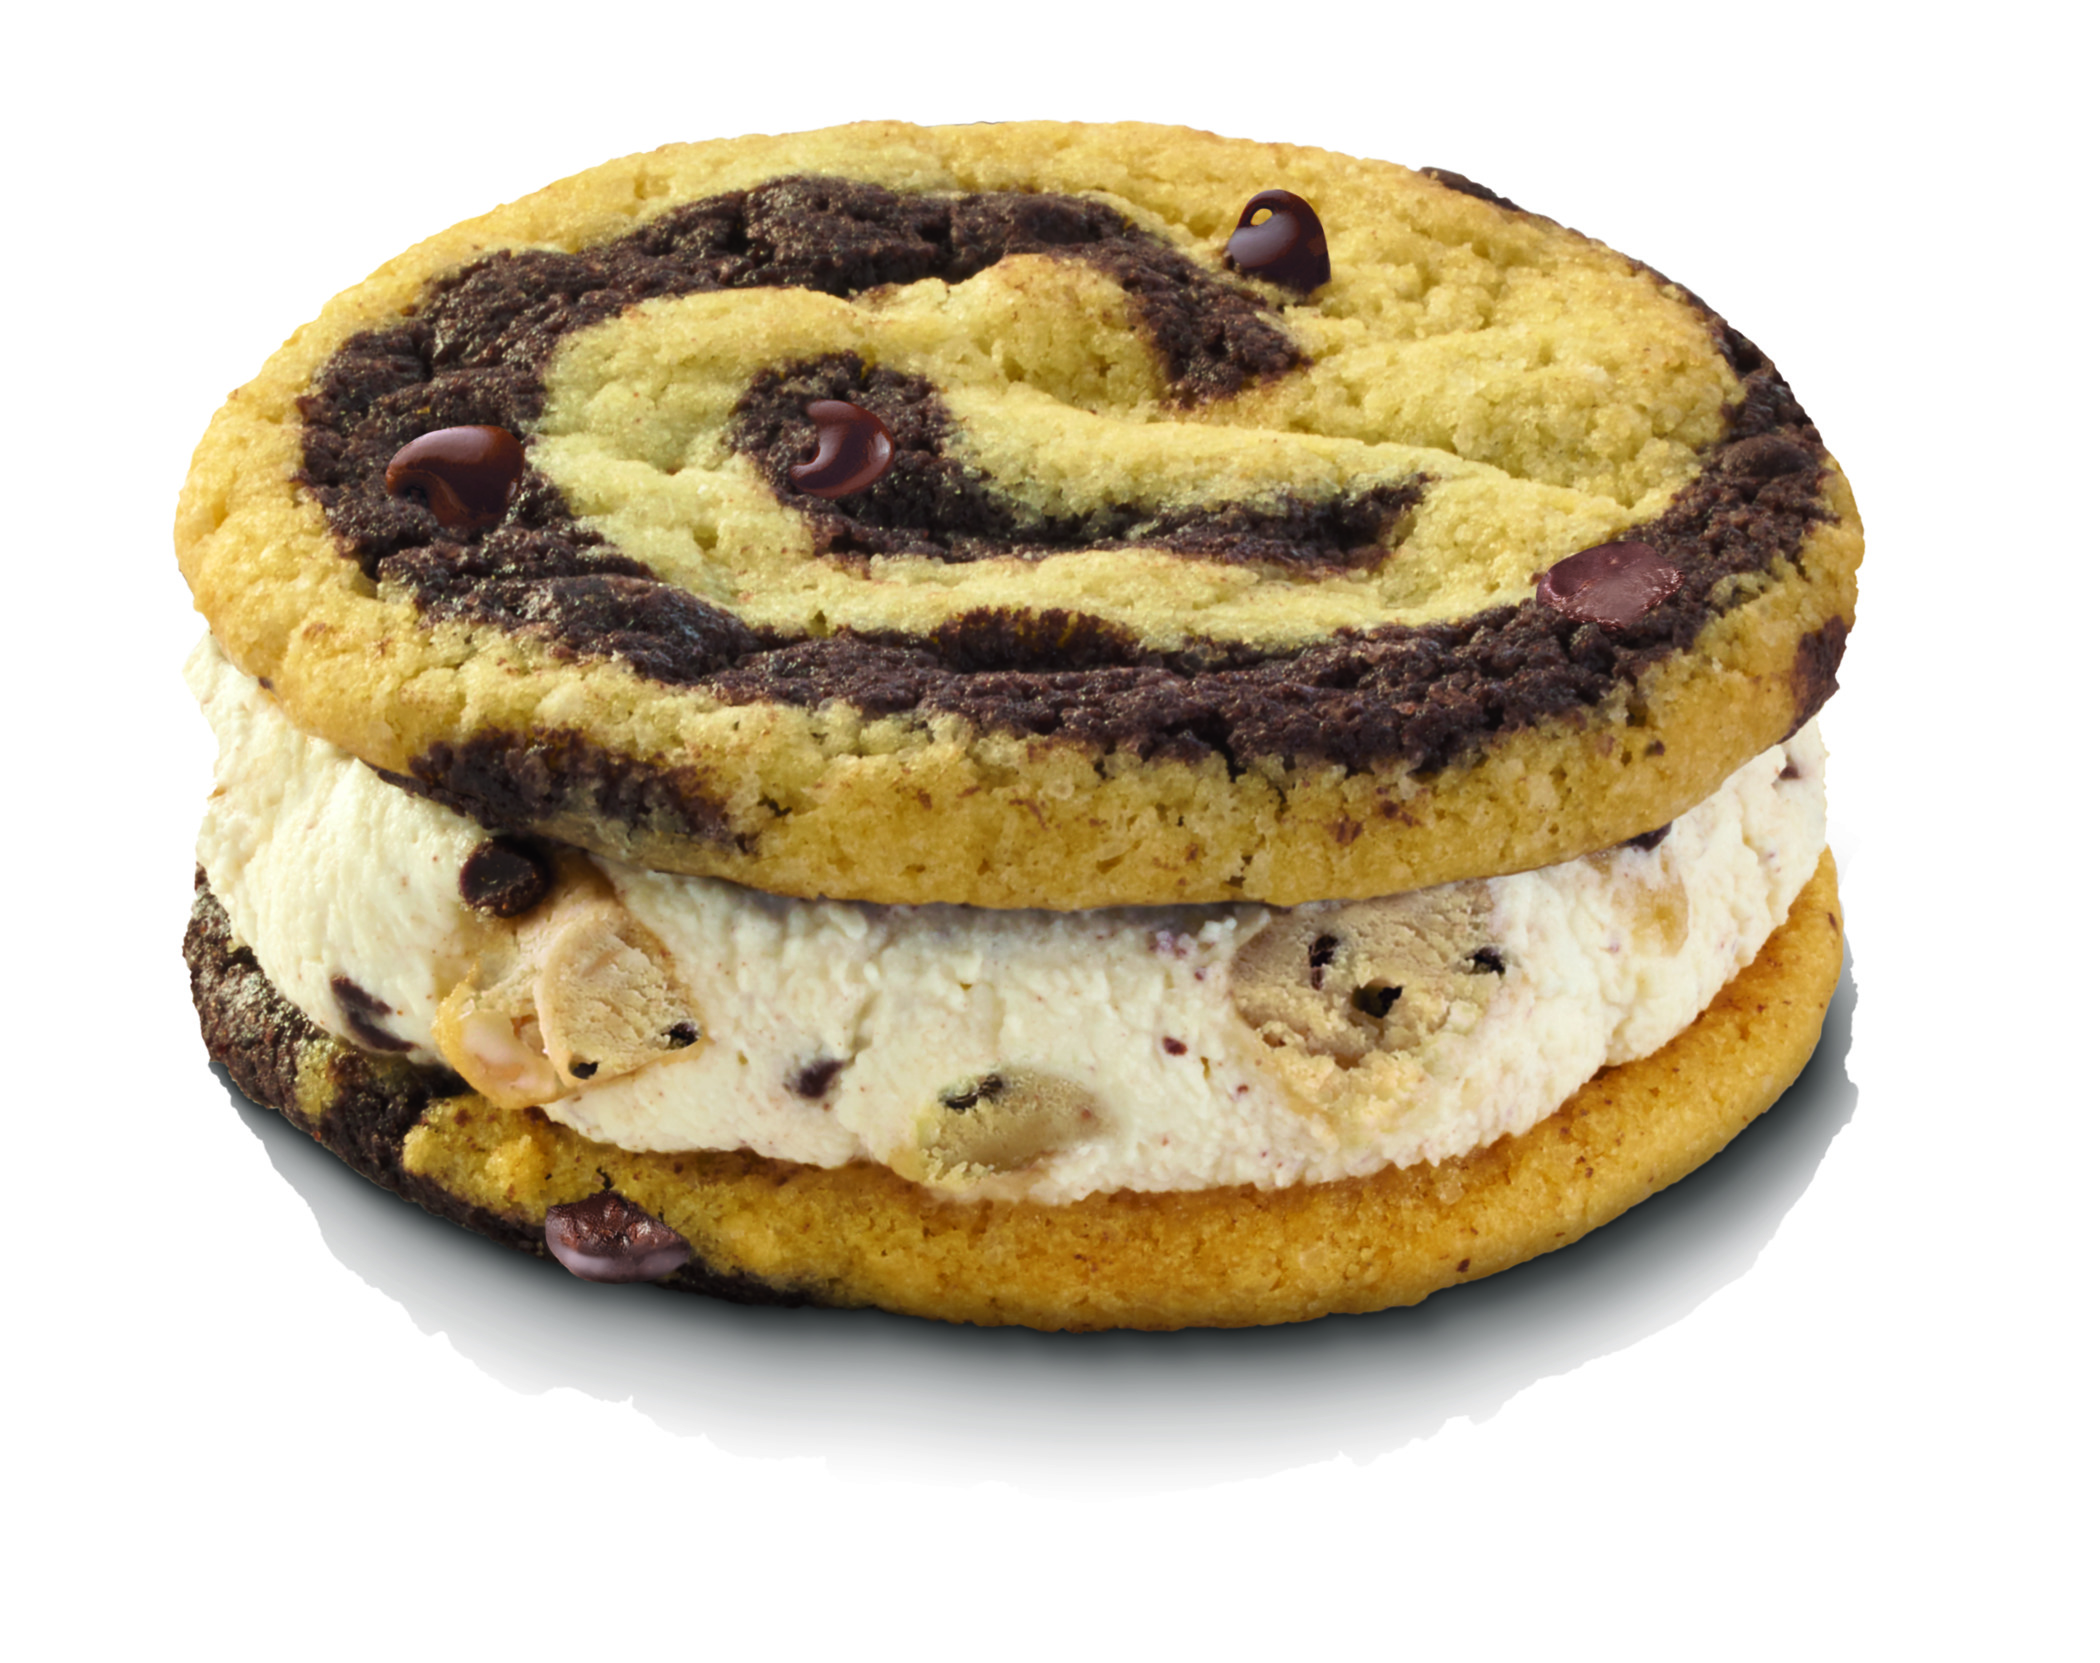 BenJerry_Wich_CookieDough_offen.jpg